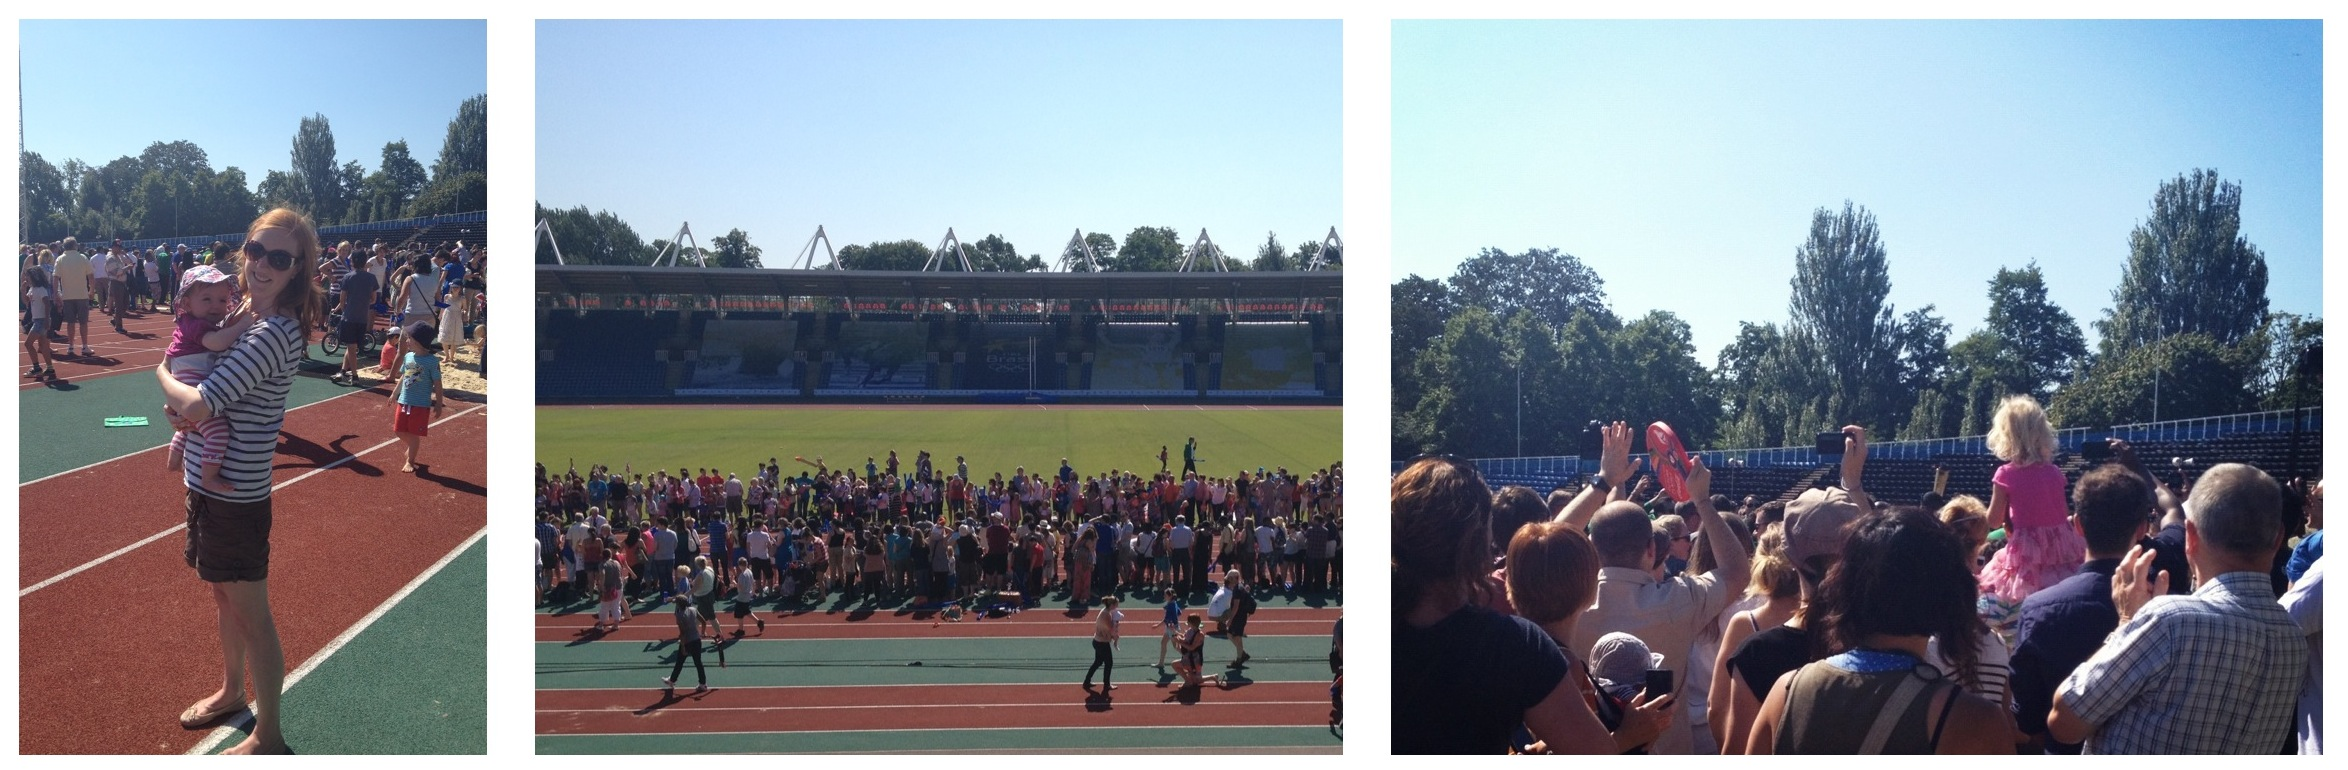 Olympic torch relay in Crystal Palace Athletic Stadium